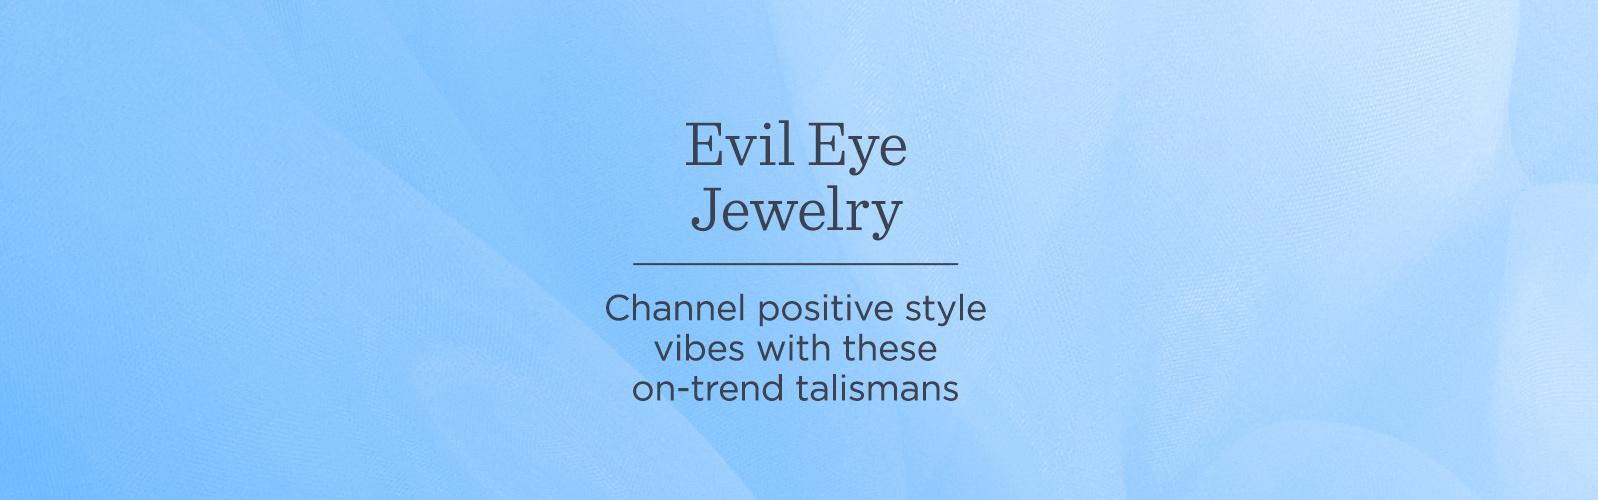 Evil Eye Jewelry - Channel positive style vibes with these on-trend talismans